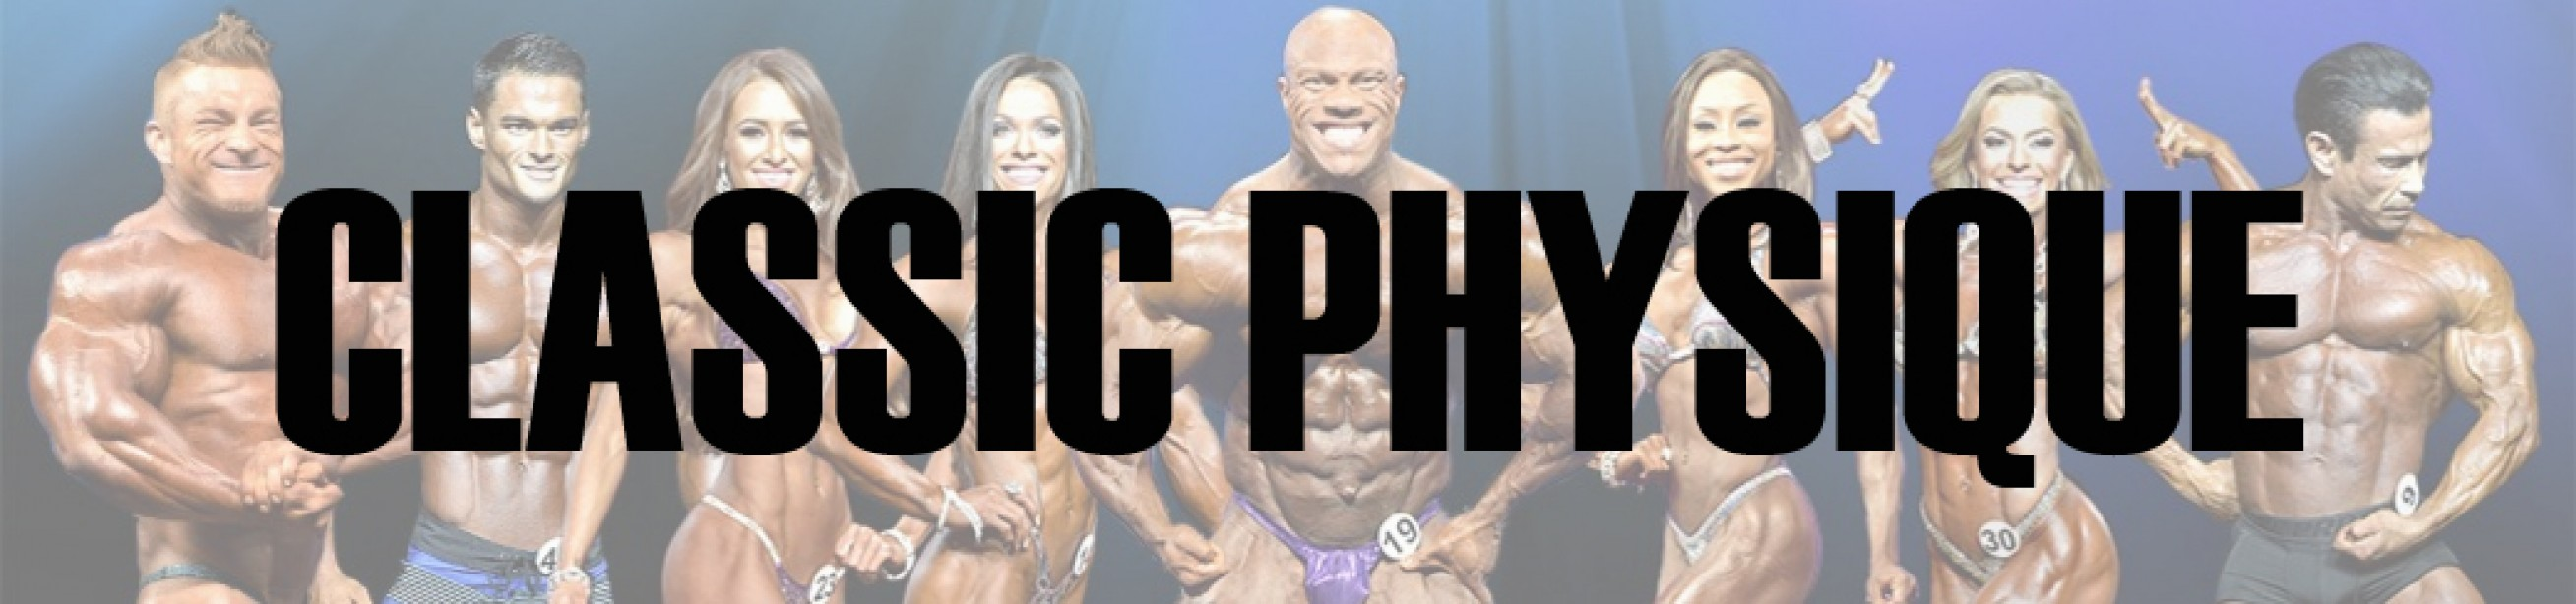 2017 Olympia Classic Physique Call Out Report